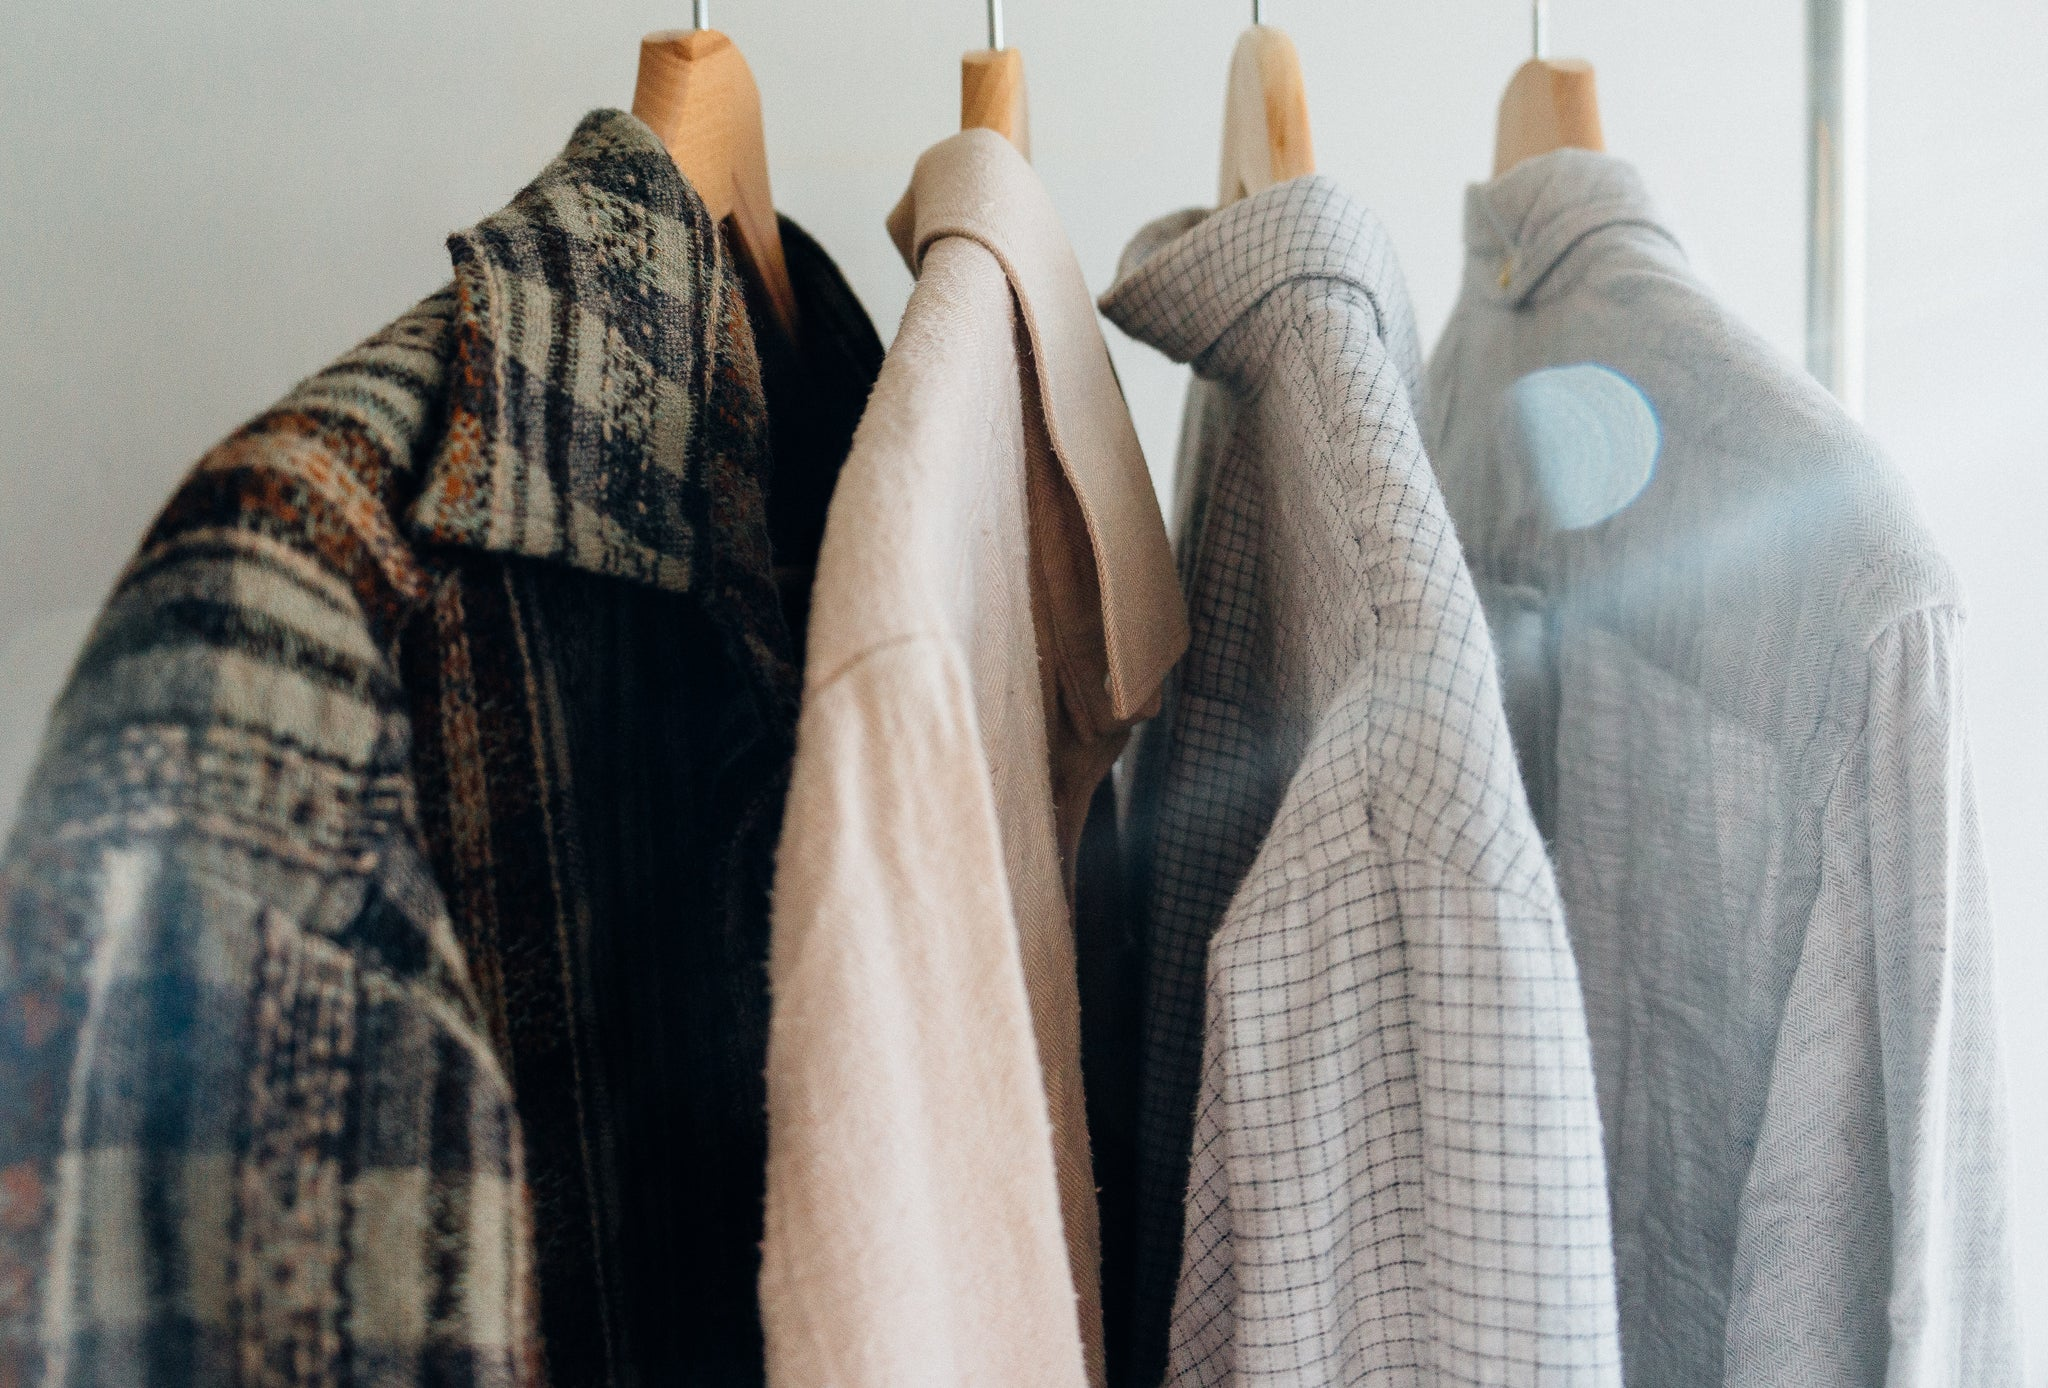 Eco-Friendly Living with a Capsule Wardrobe - Part 1